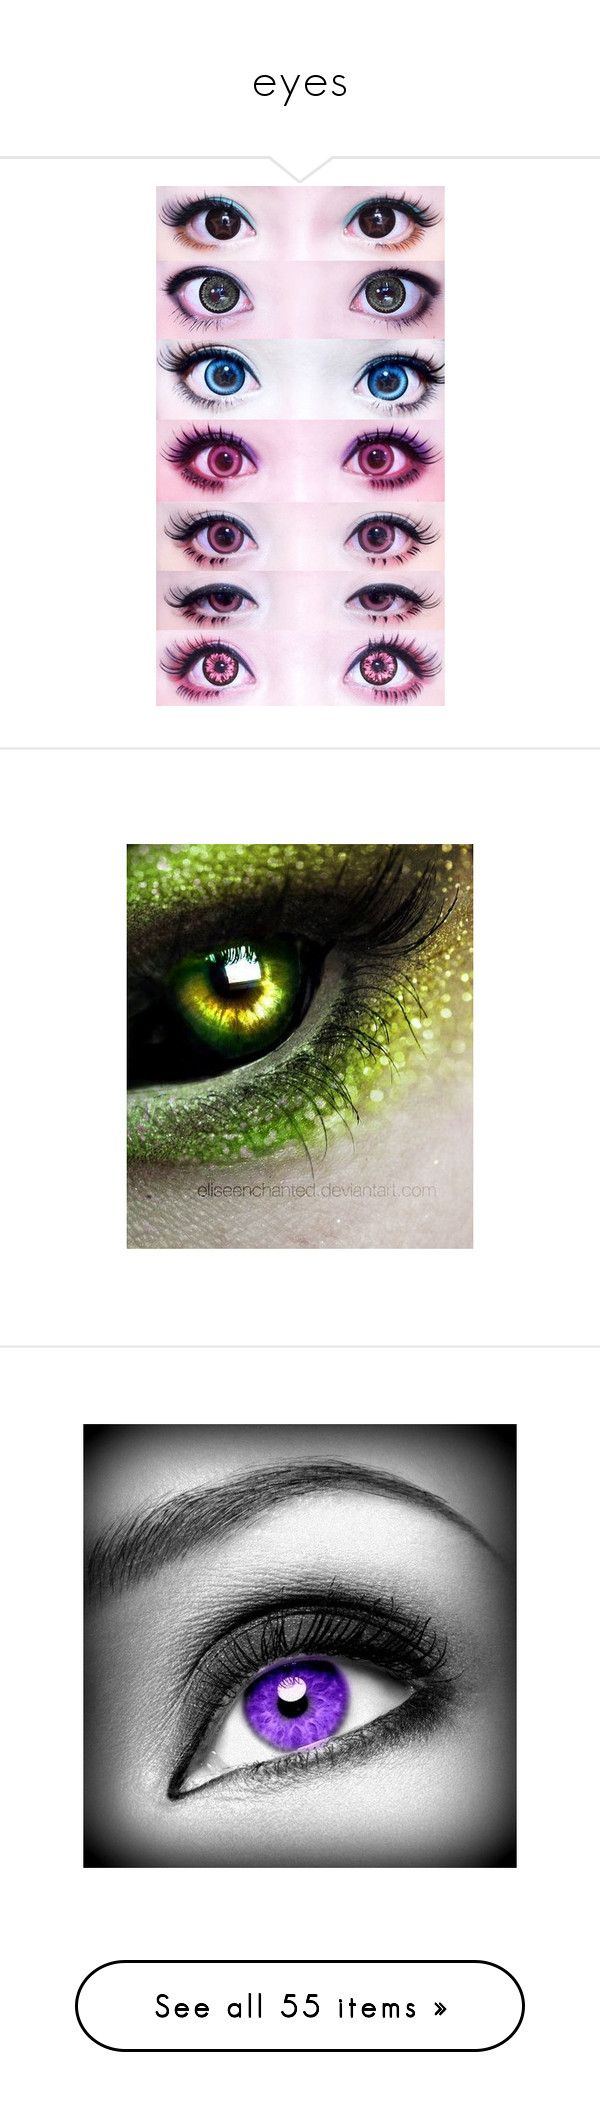 """""""eyes"""" by doodlebob3 ❤ liked on Polyvore featuring eyes, contacts, beauty products, makeup, eye makeup, skincare, eye care, backgrounds, pics and herz"""